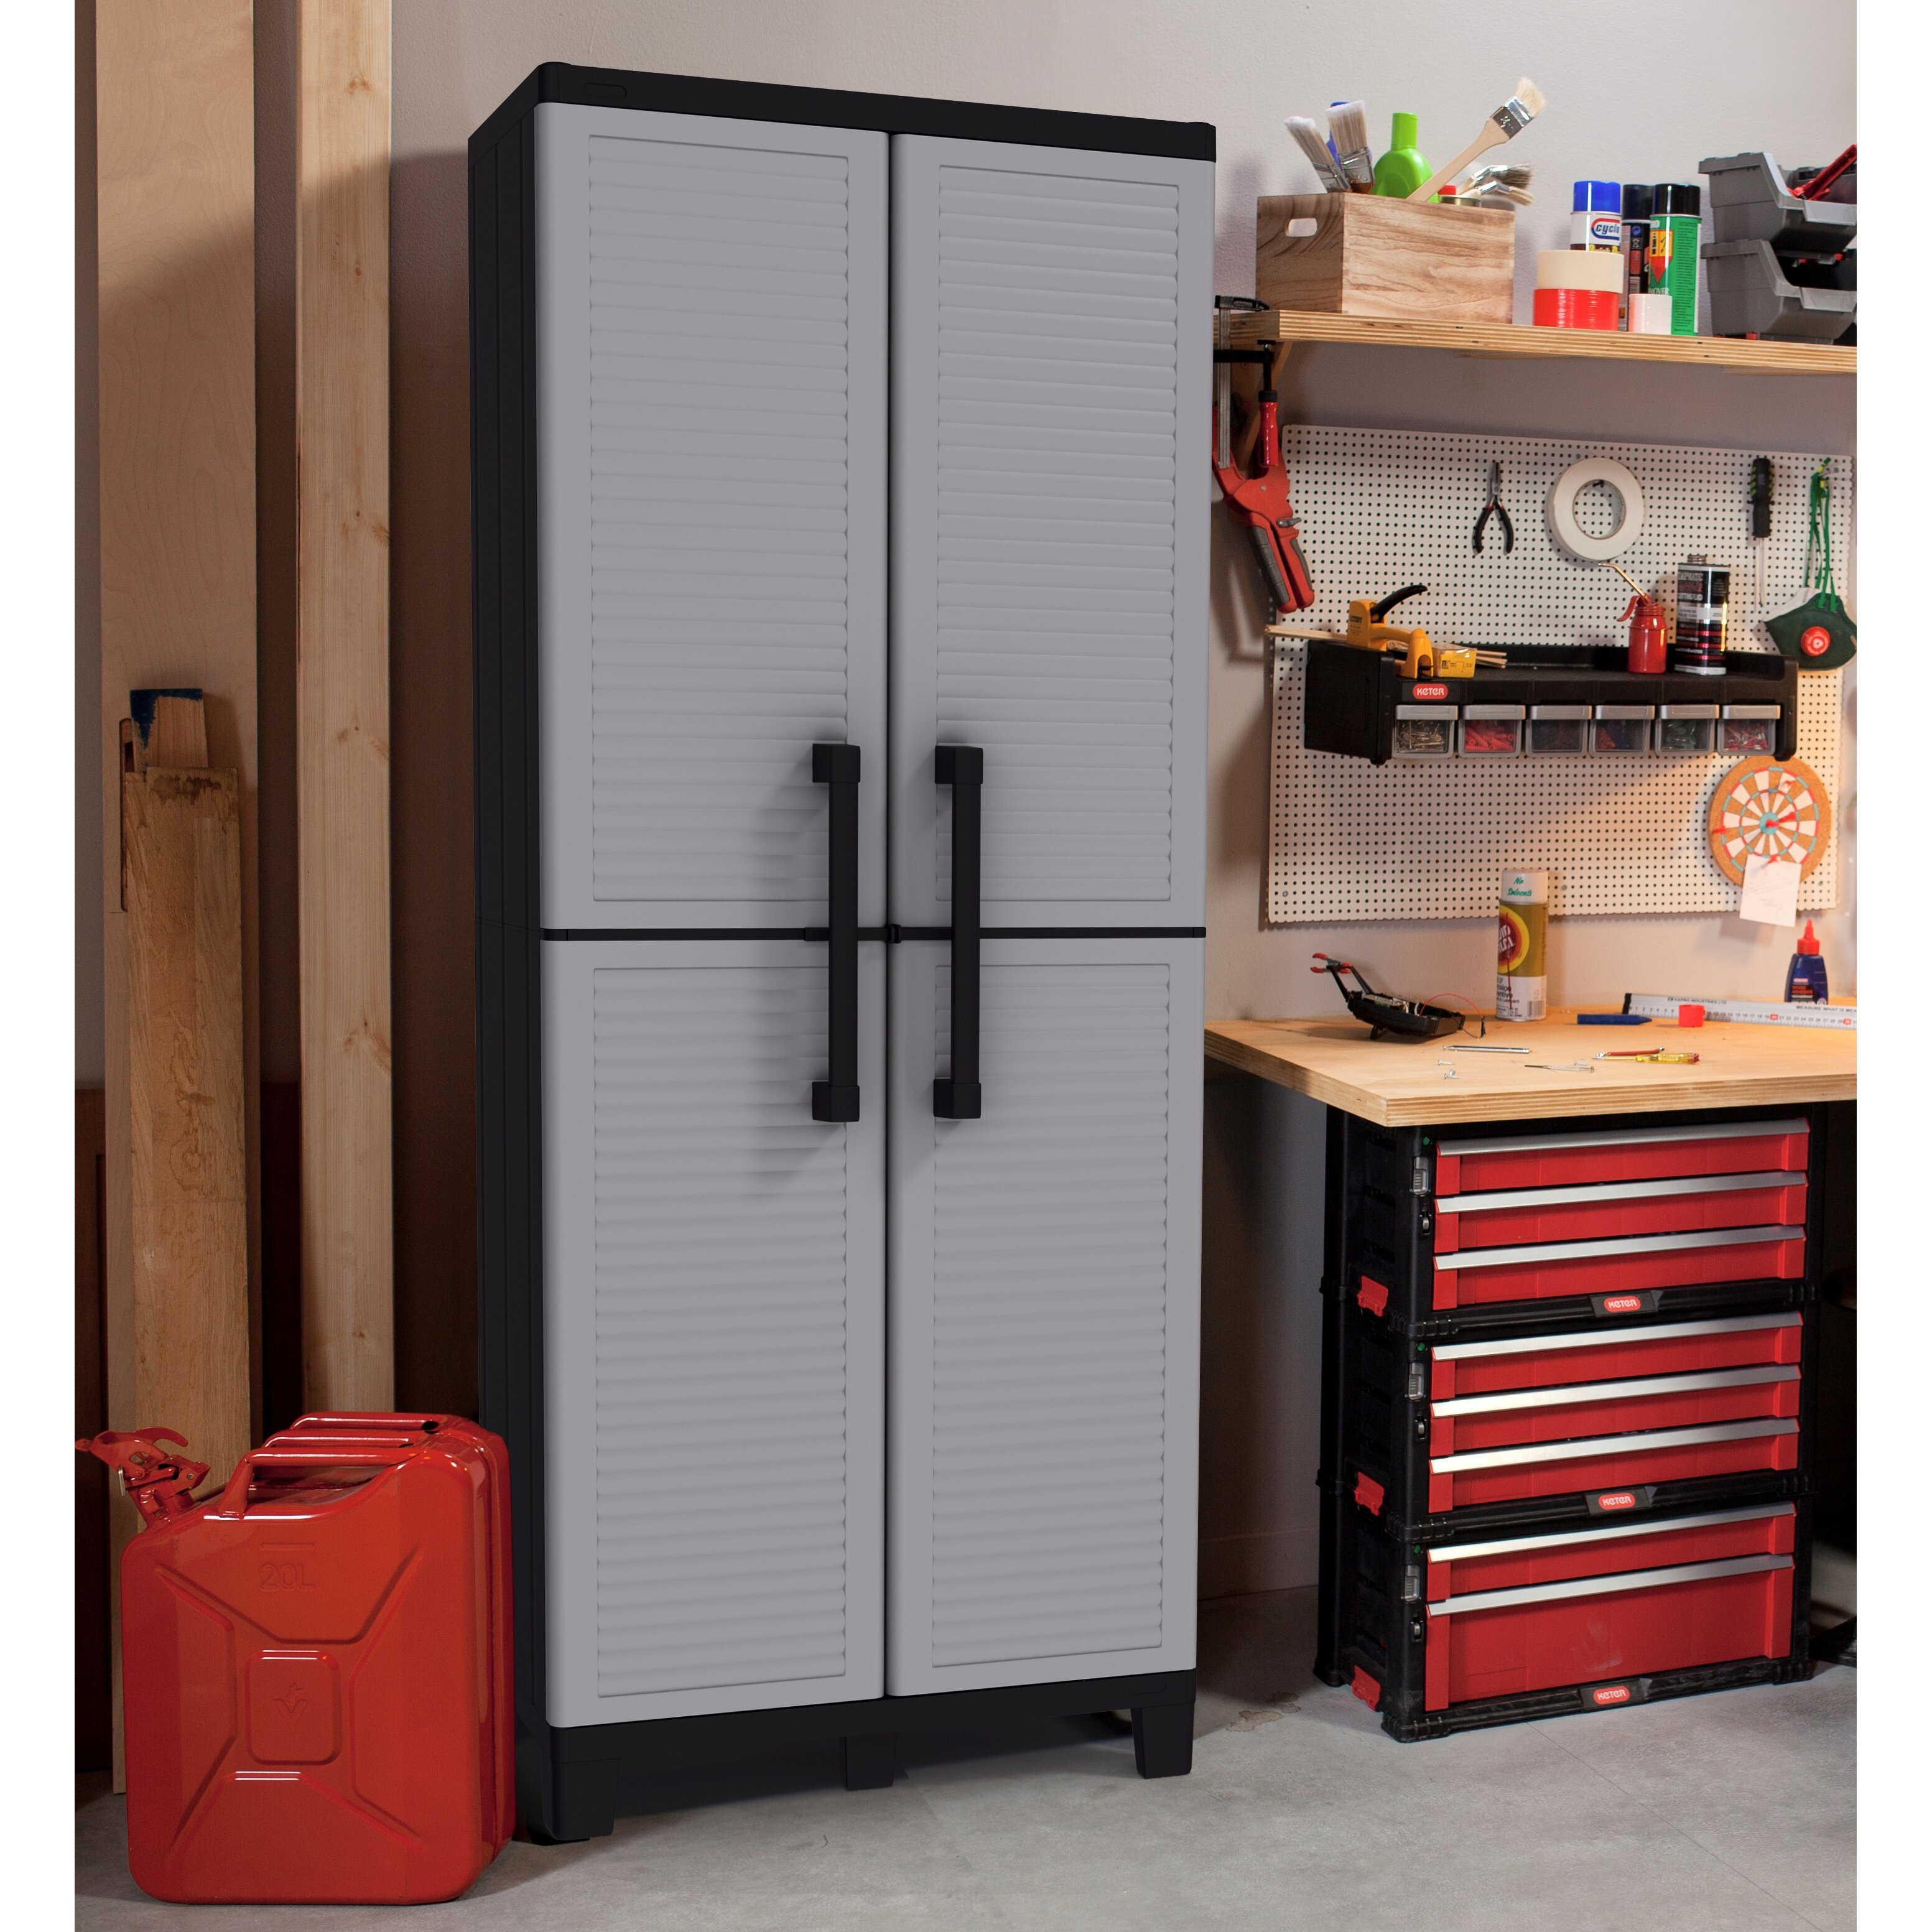 Keter 2 door storage cabinet reviews wayfair for One day doors and closets reviews